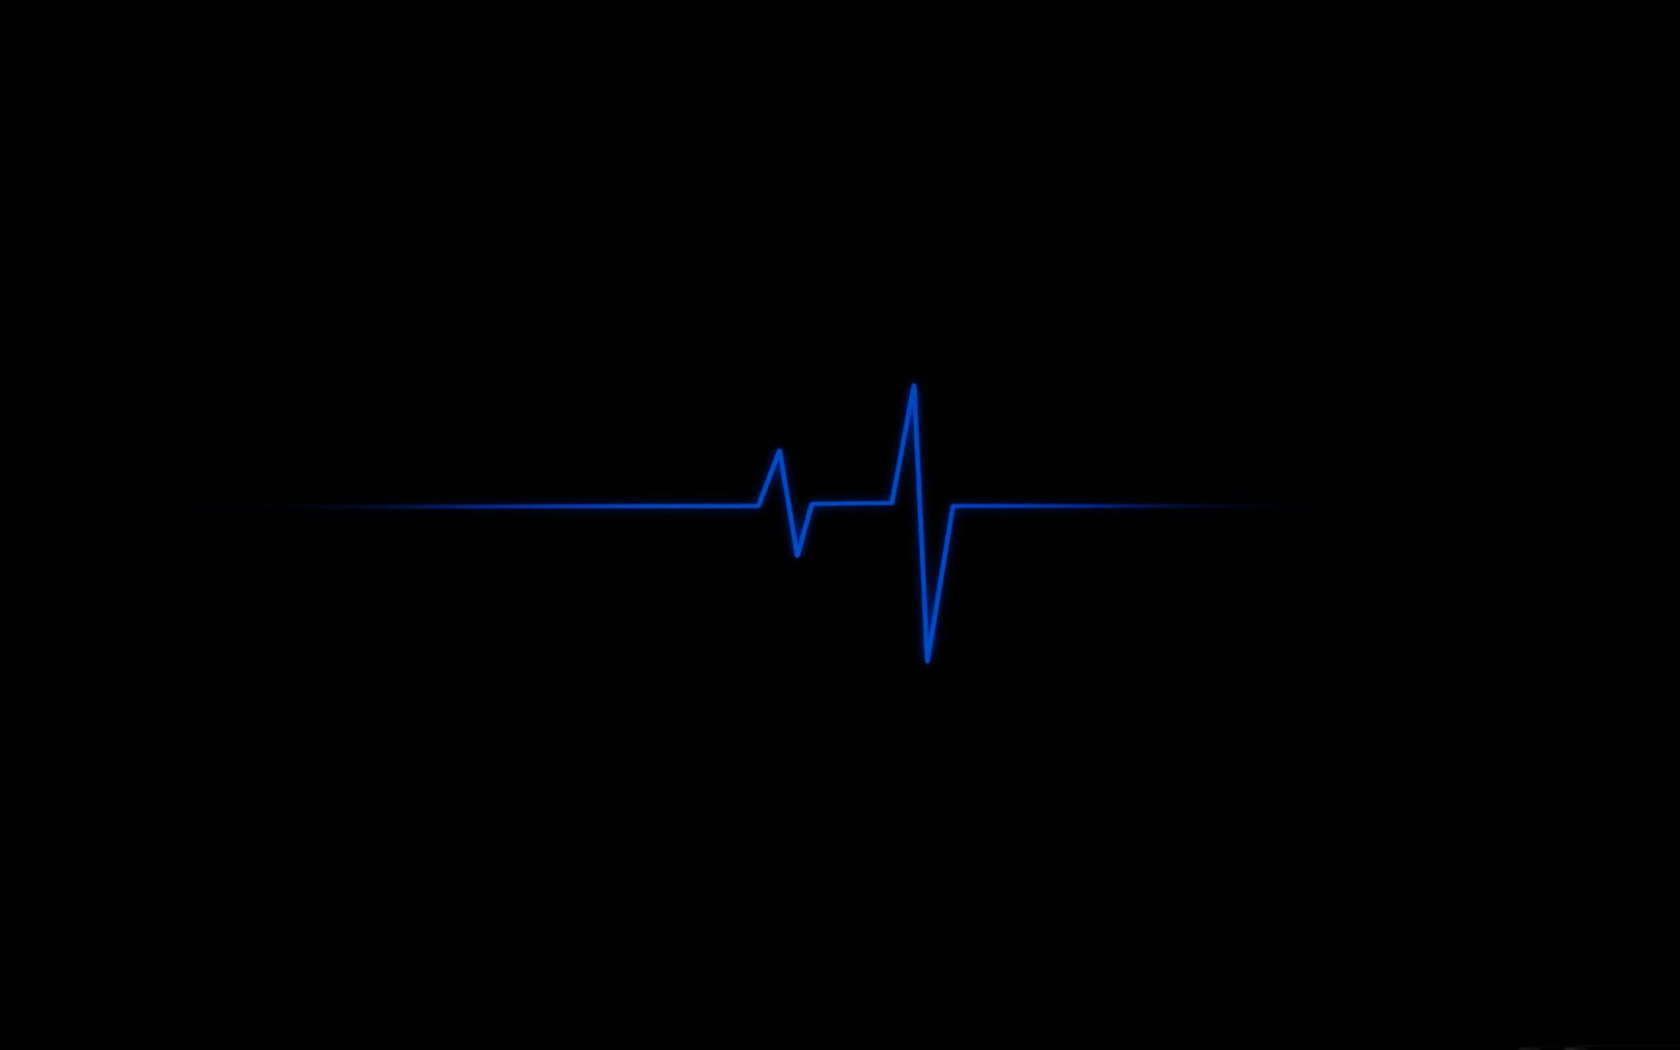 Free Download Heartbeat Abstract Hd Wallpapers Wallpapersin4knet 1920x1080 For Your Desktop Mobile Tablet Explore 77 Heartbeat Wallpaper Heart Background Wallpaper Heart Wallpaper Images Heart Wallpapers For Desktop